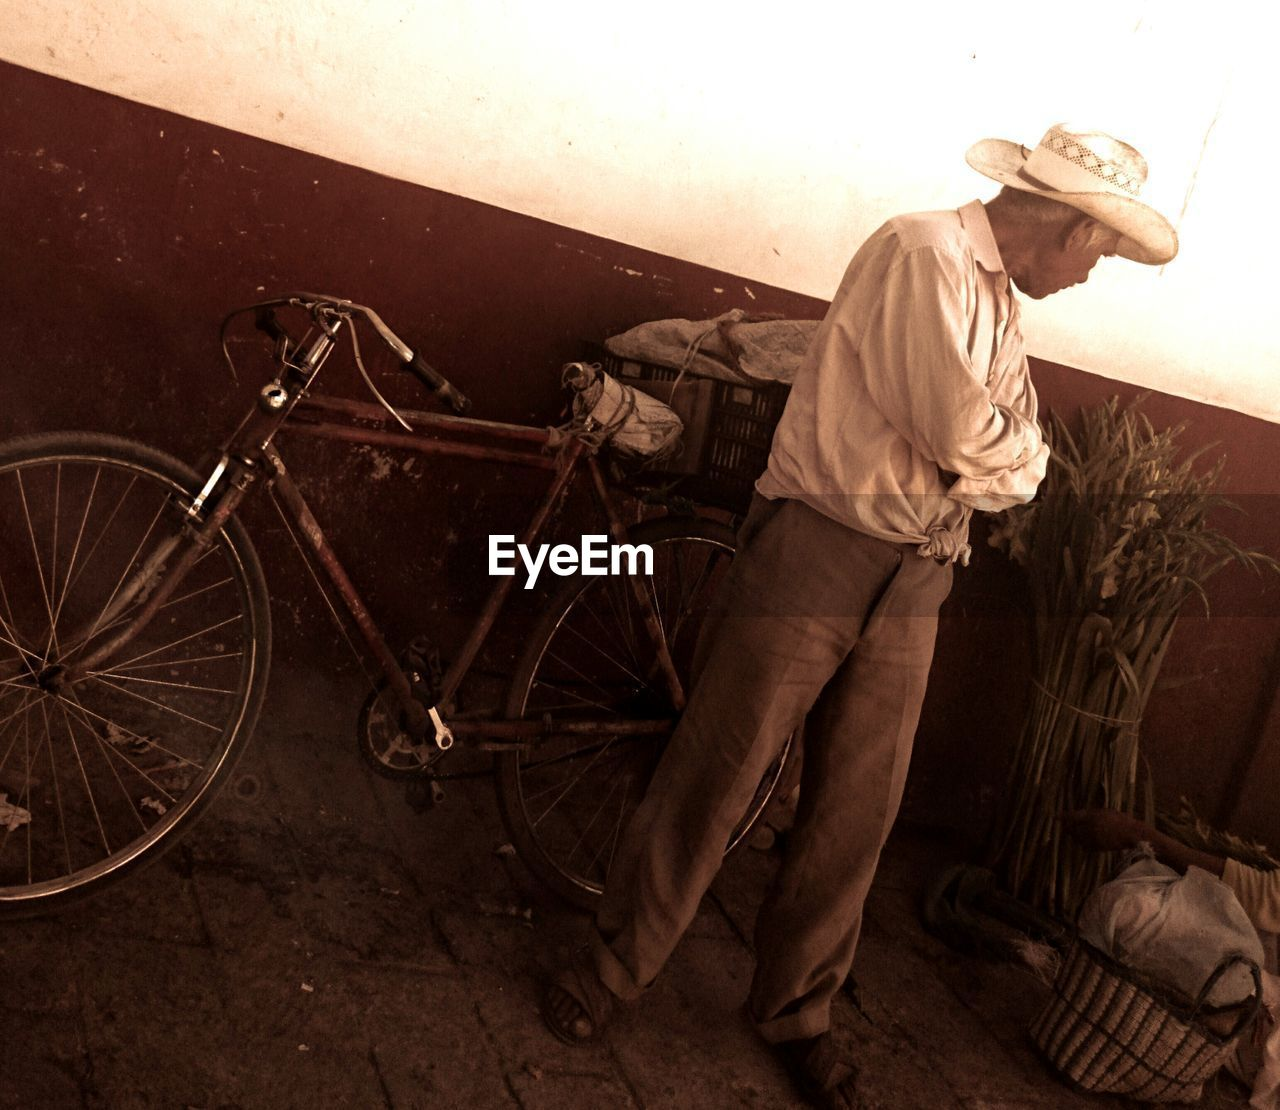 bicycle, mode of transport, transportation, land vehicle, standing, full length, one person, real people, men, stationary, occupation, working, outdoors, mechanic, night, people